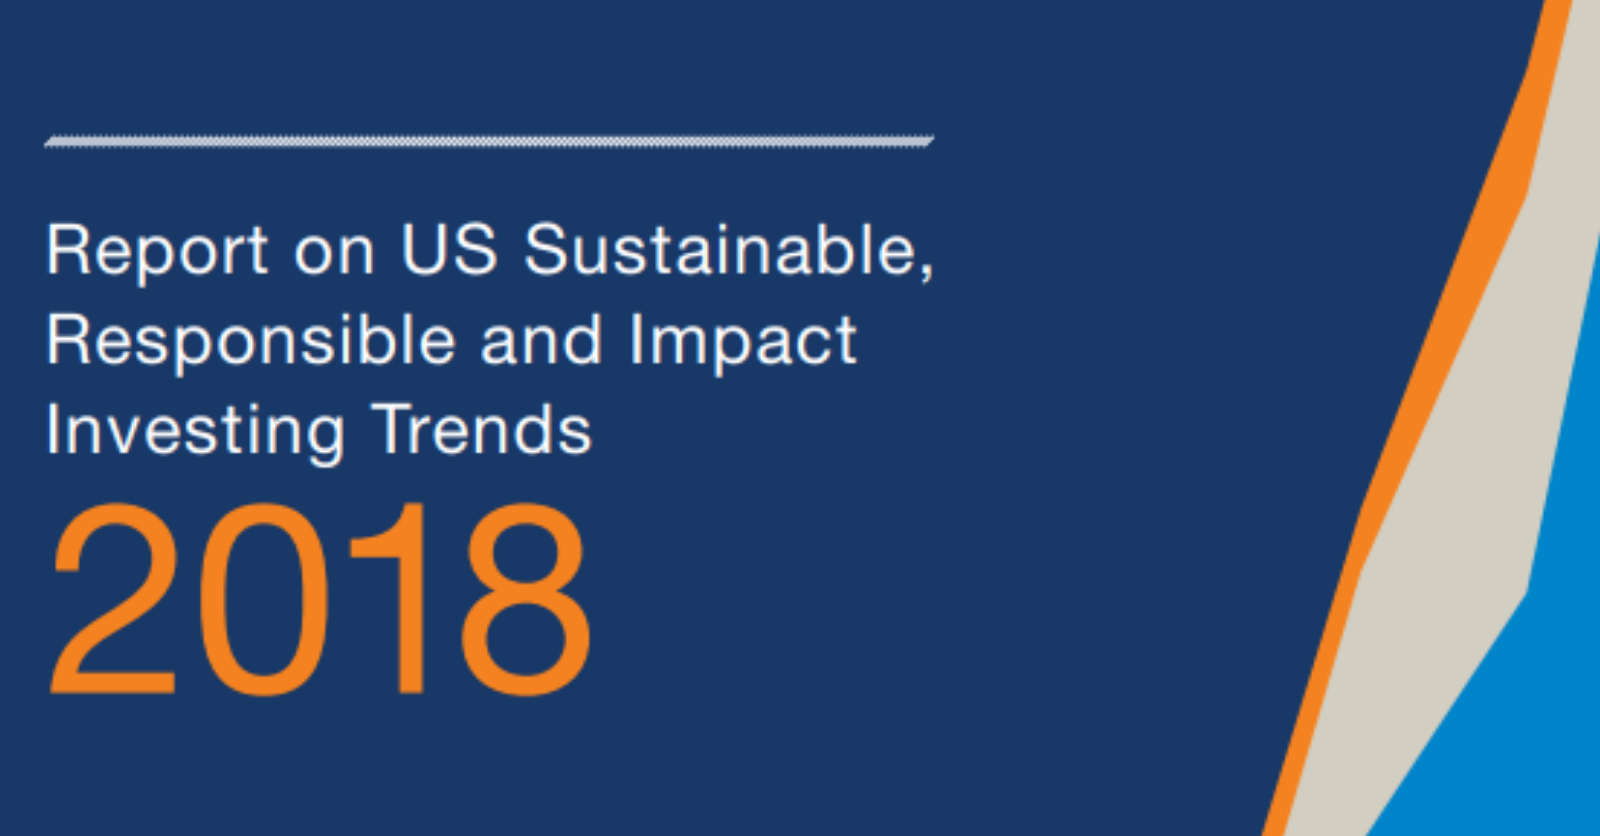 New Trends Report Released: Sustainable, Responsible and Impact Investing Hits $12T